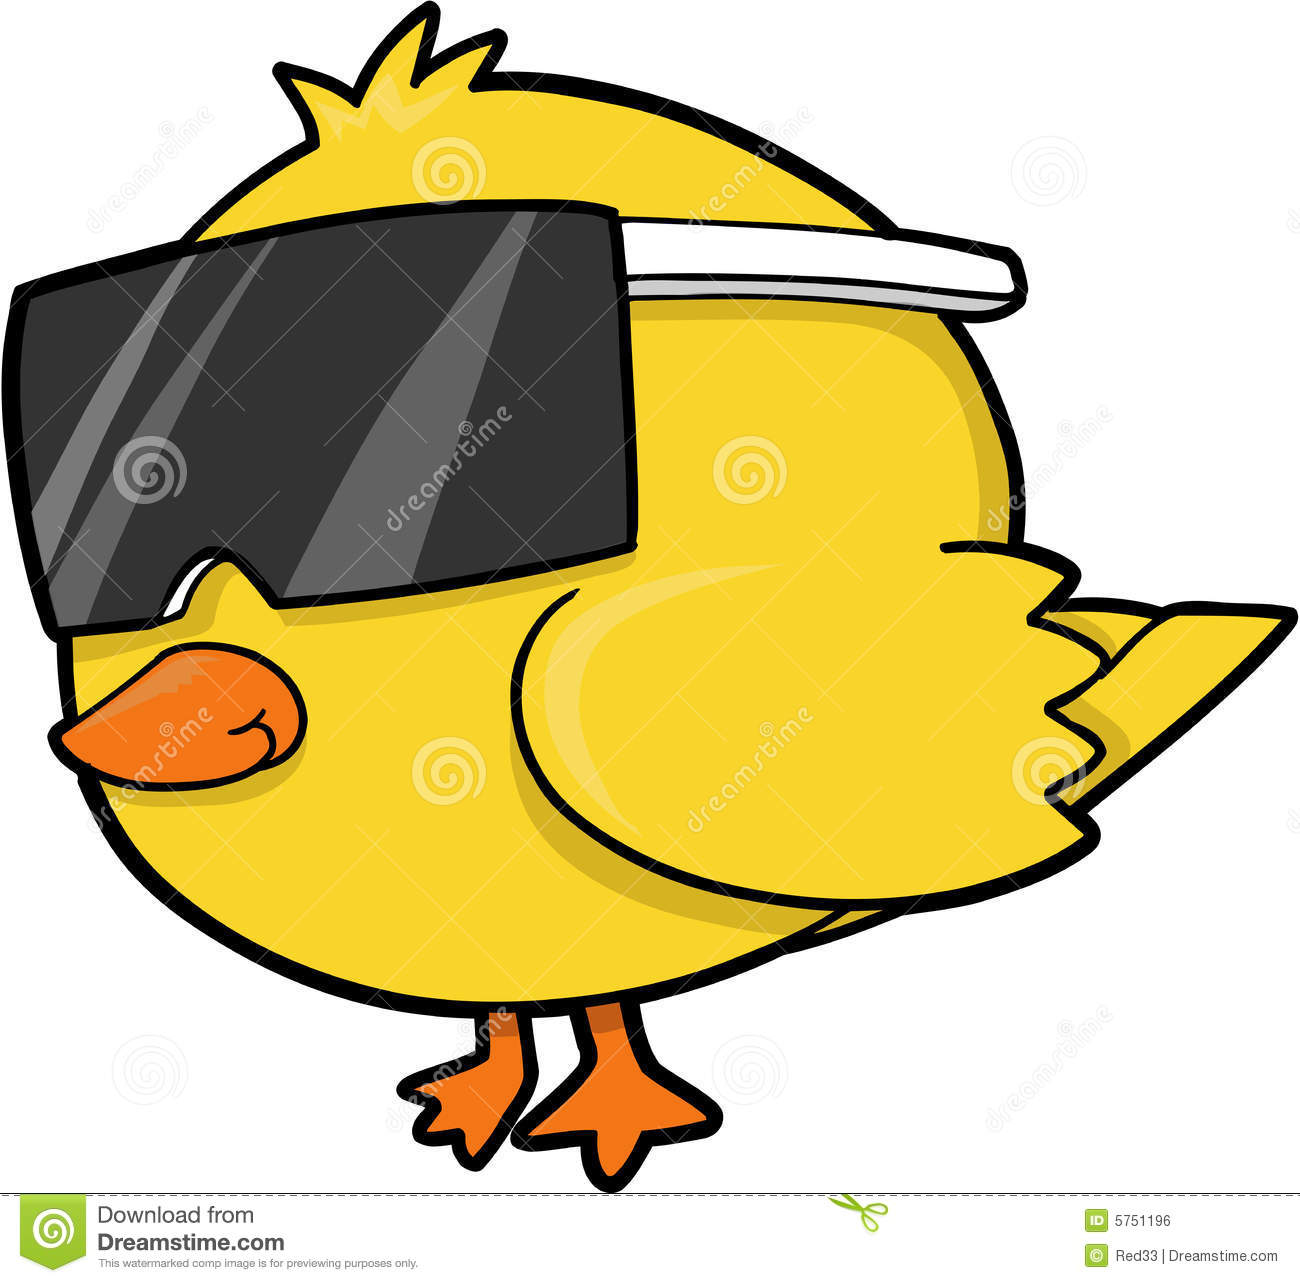 Cool Chick Vector Royalty Free Stock Image - Image: 5751196